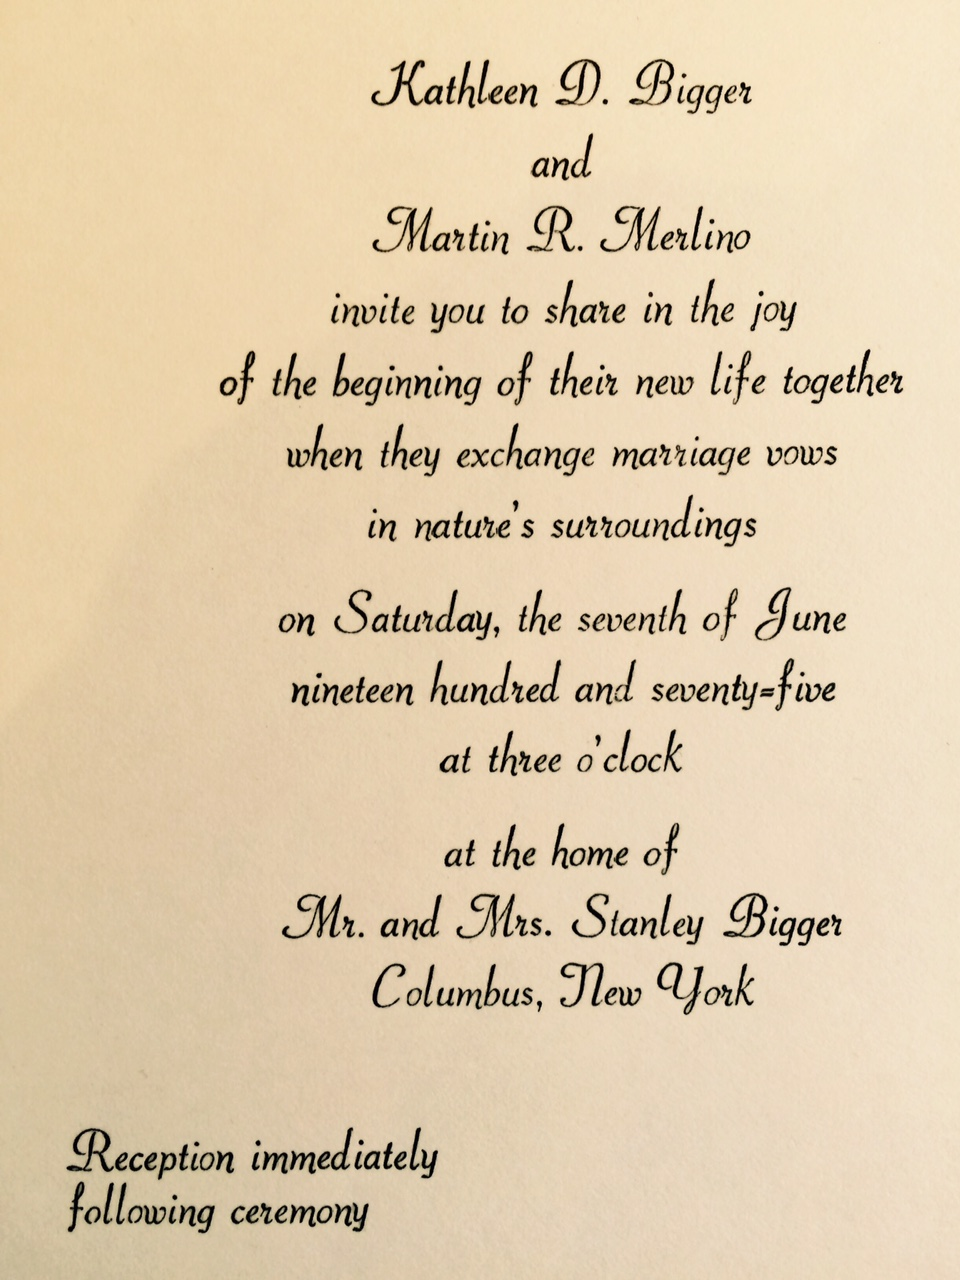 1970s: A Brief History of Wedding Invitations – Wedding Invitations